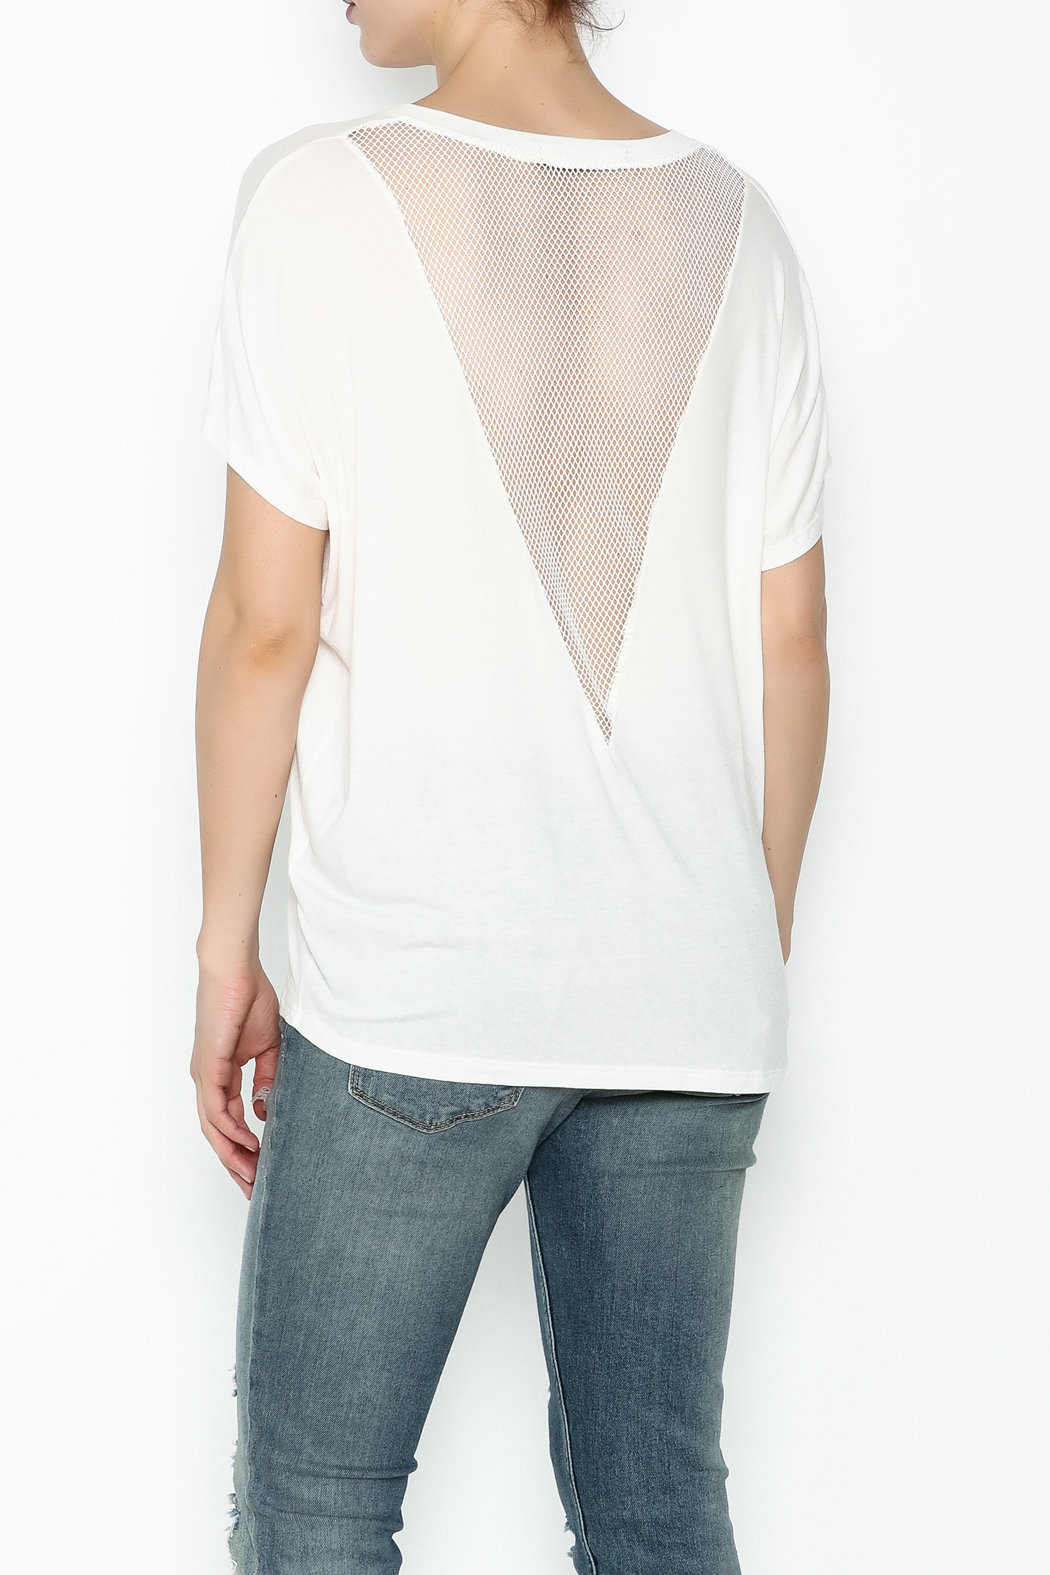 Coin 1804 Mesh V Back Tee - Main Image